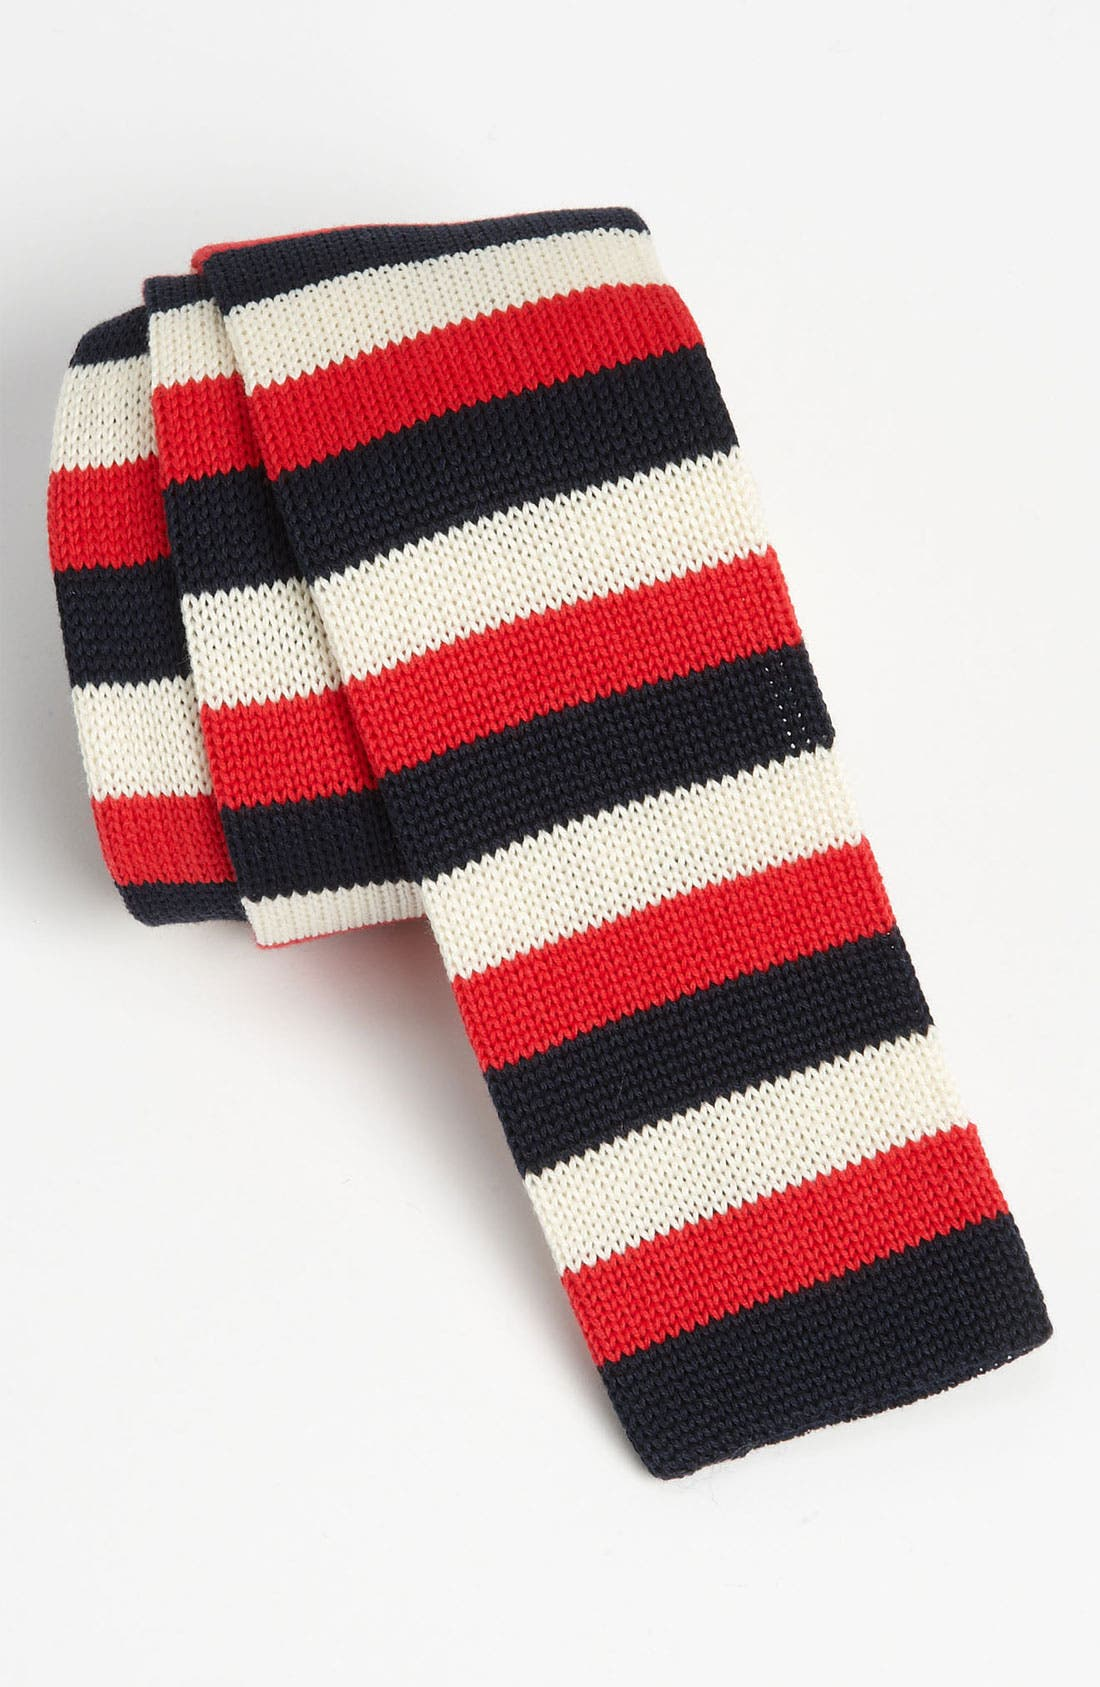 Alternate Image 1 Selected - 1901 Knit Cotton Tie (Online Only)